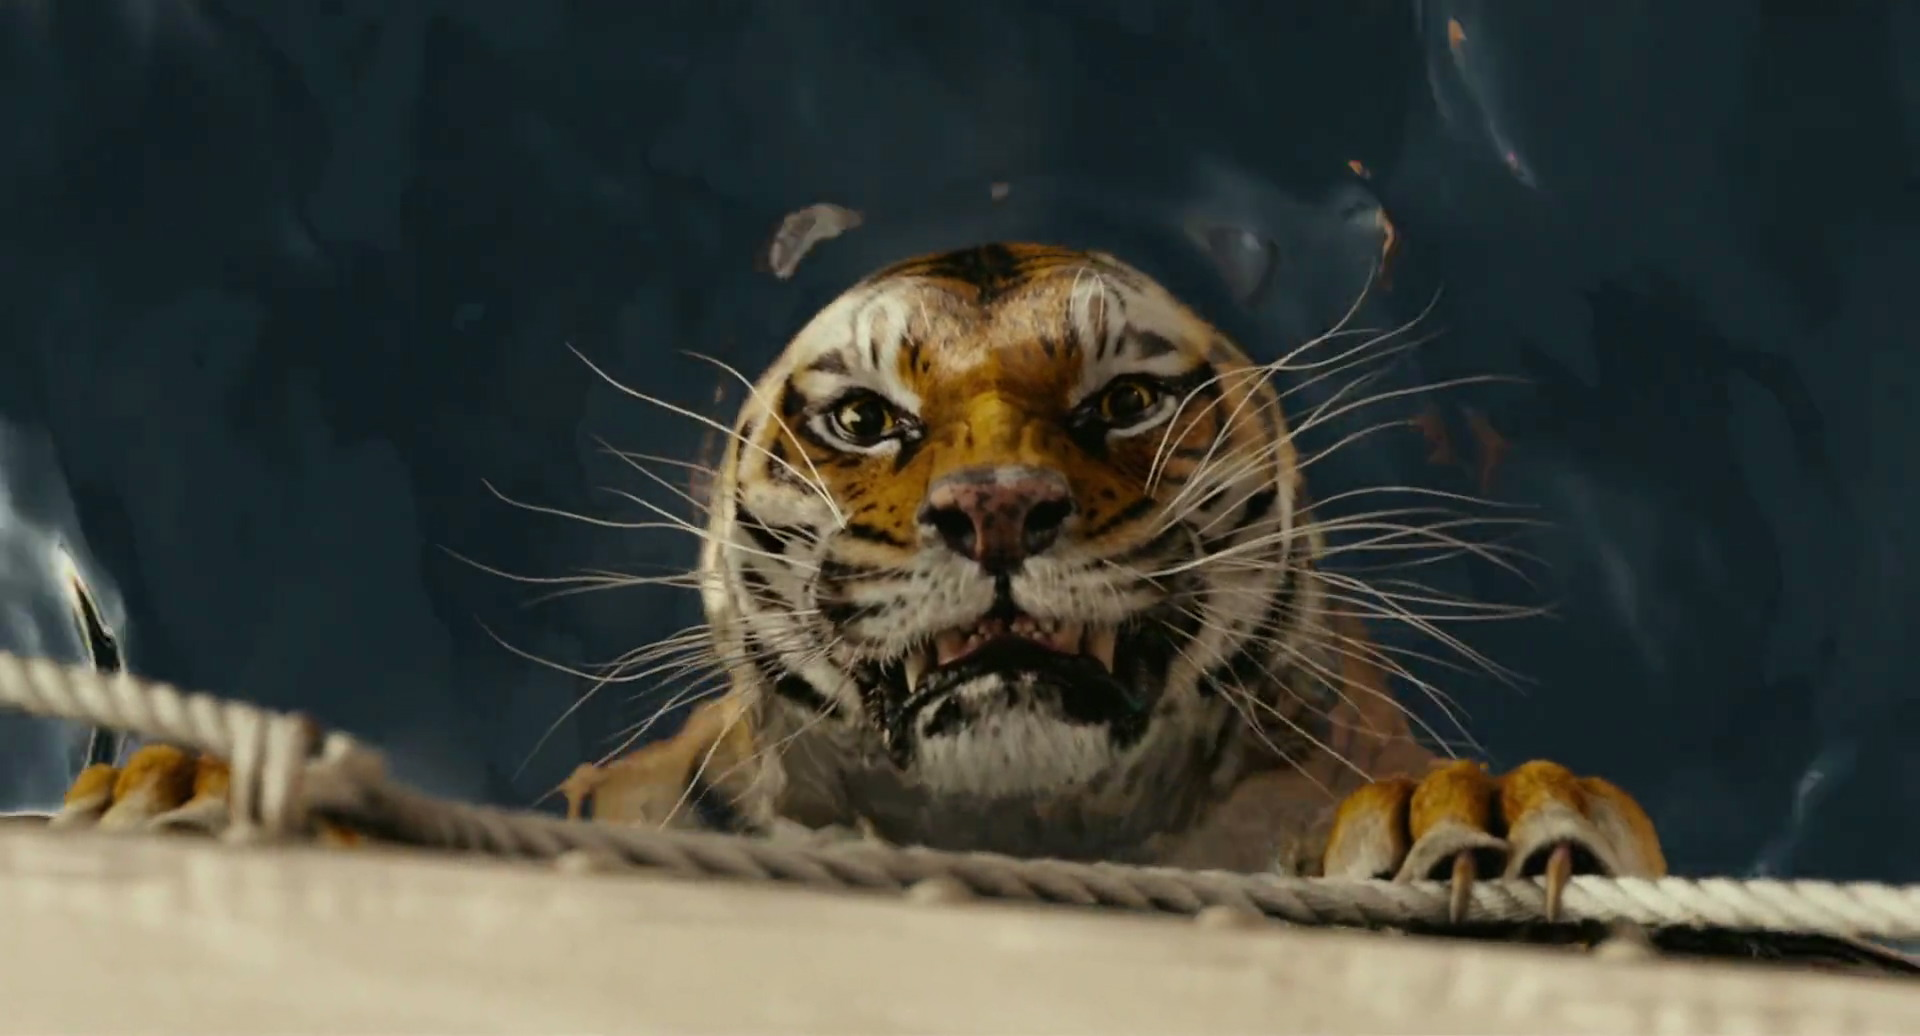 life of pi animals essay Essays and criticism on yann martel's life of pi - criticism life of pi criticism - essay yann martel speaking animals are often a criterion for fables.